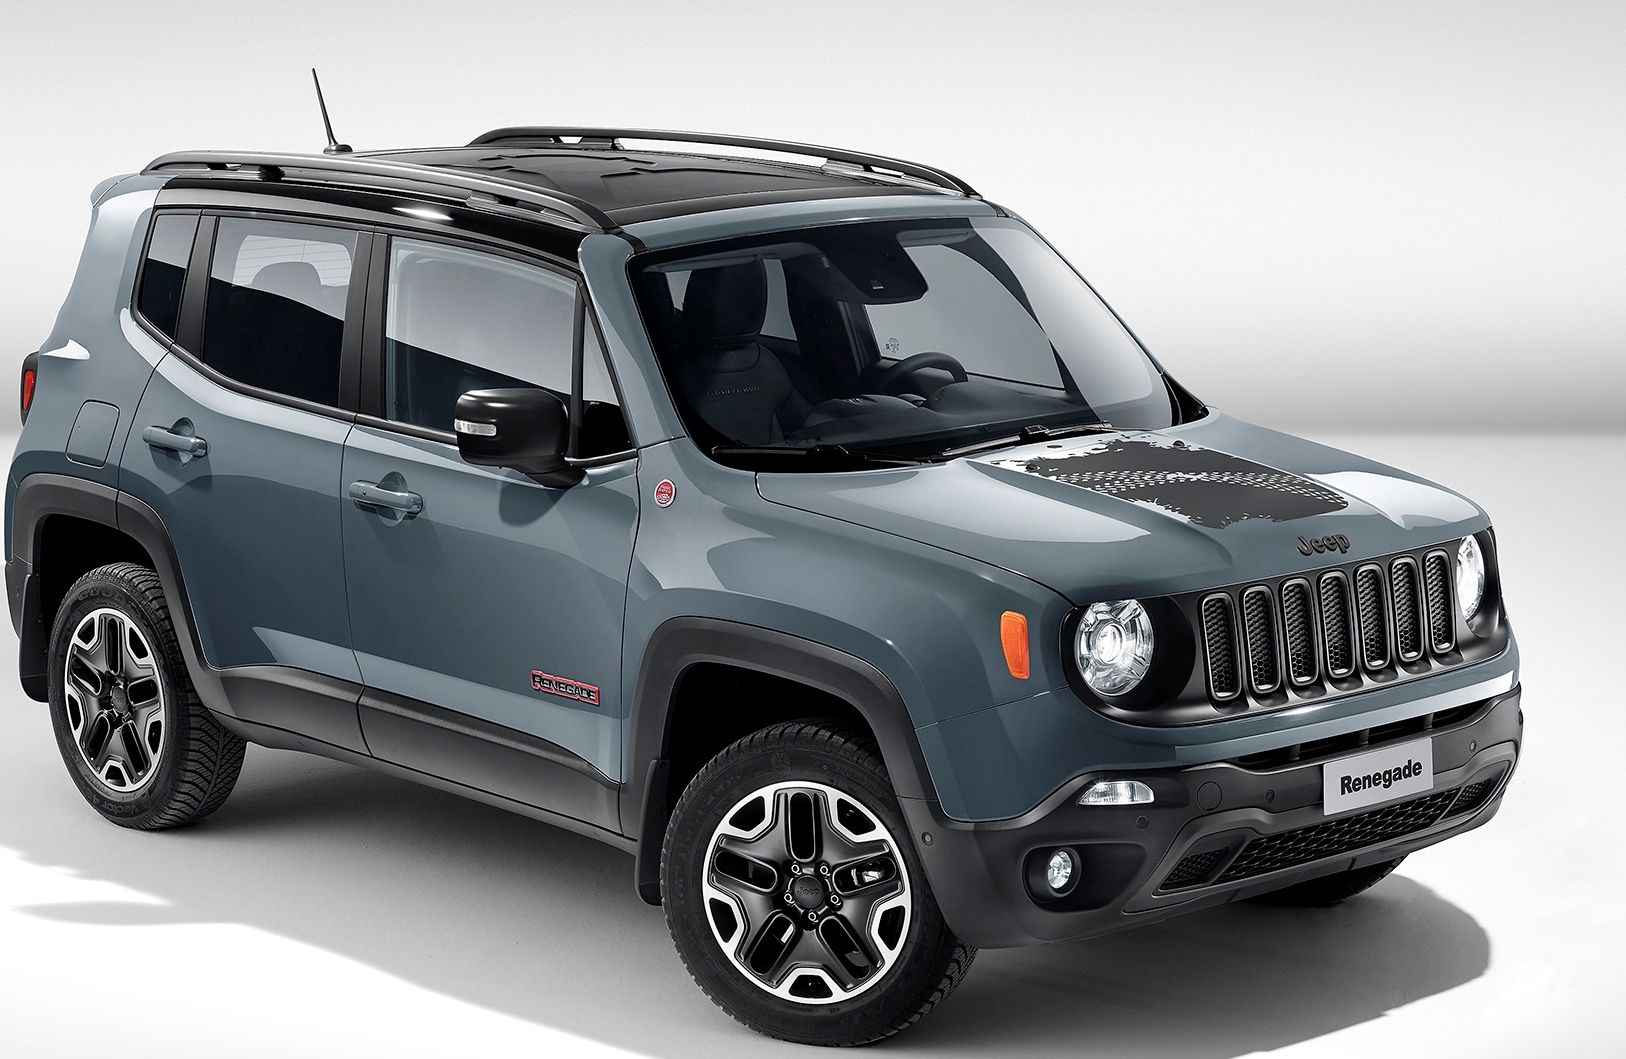 The Jeep Renegade Trailhawk Includes 17 Inch Aluminum Alloy Rims